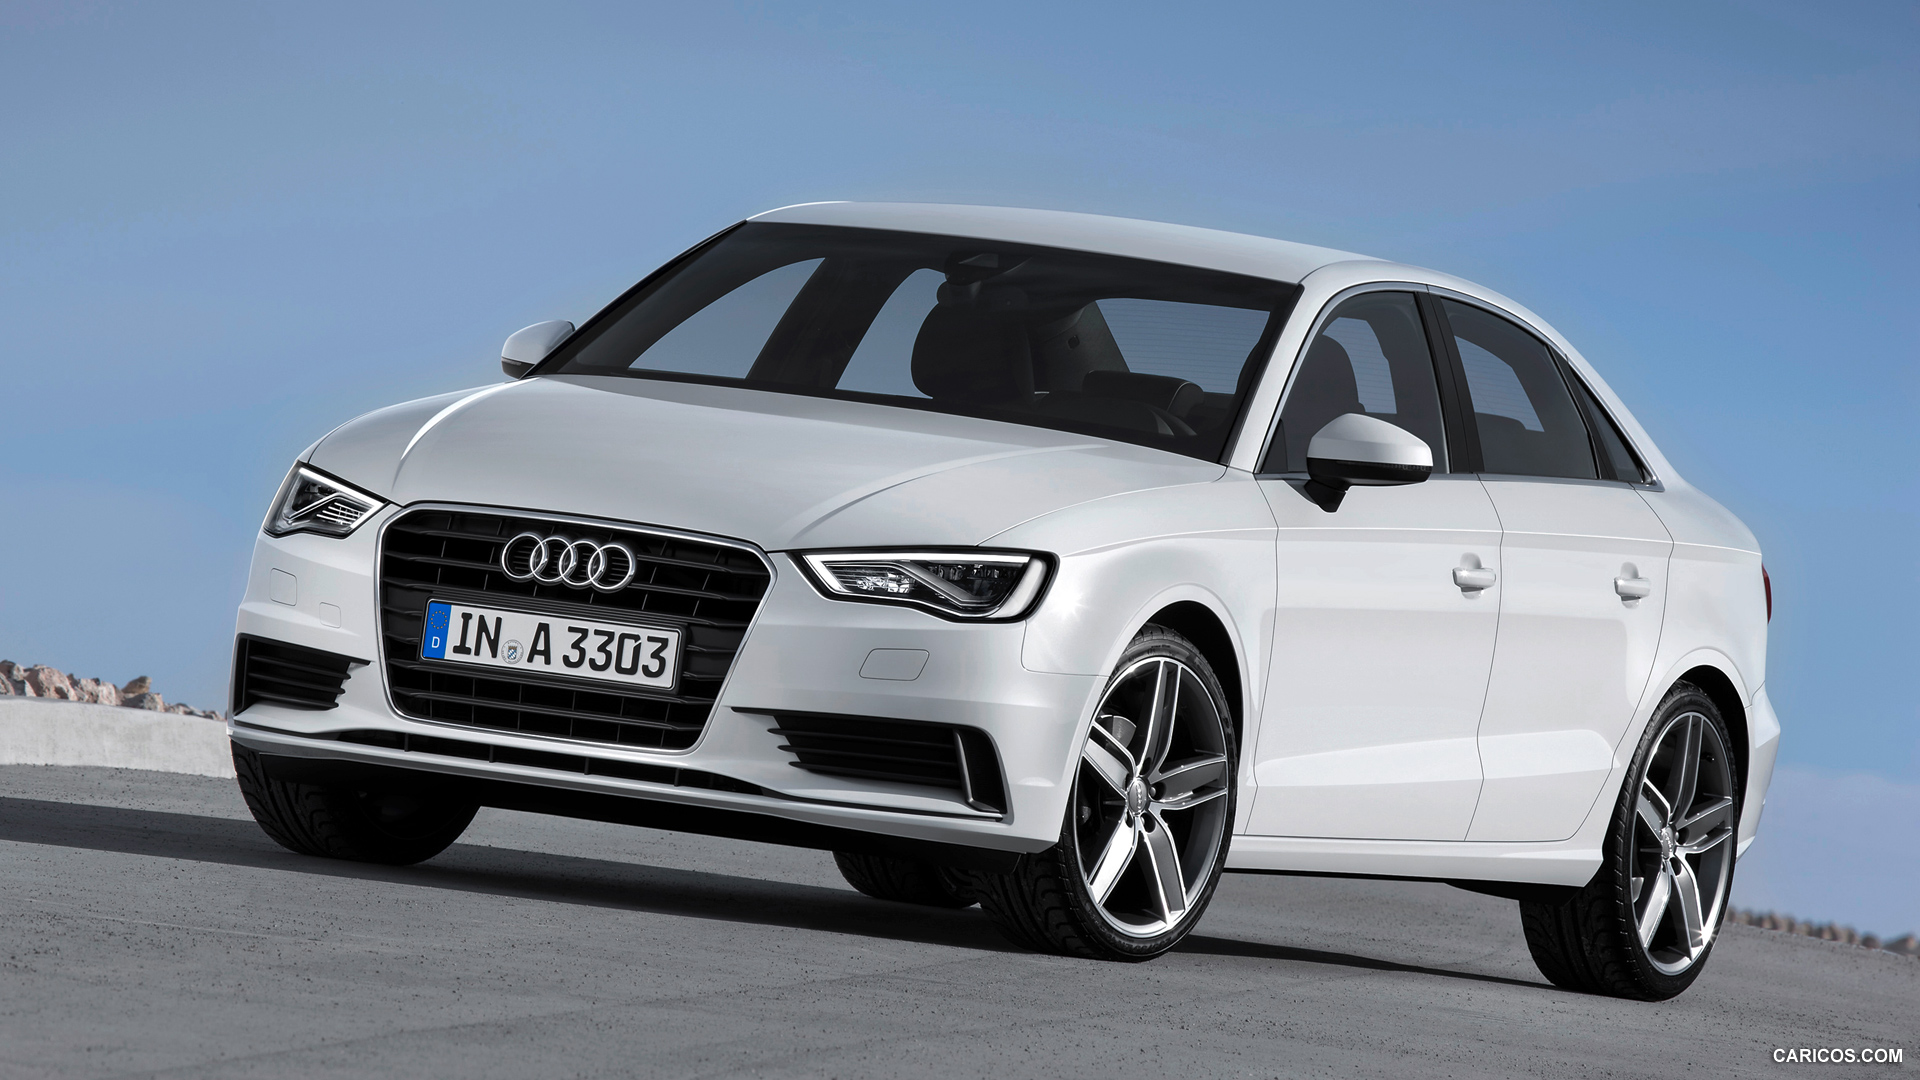 Audi A3 Sedan  HD Wallpaper